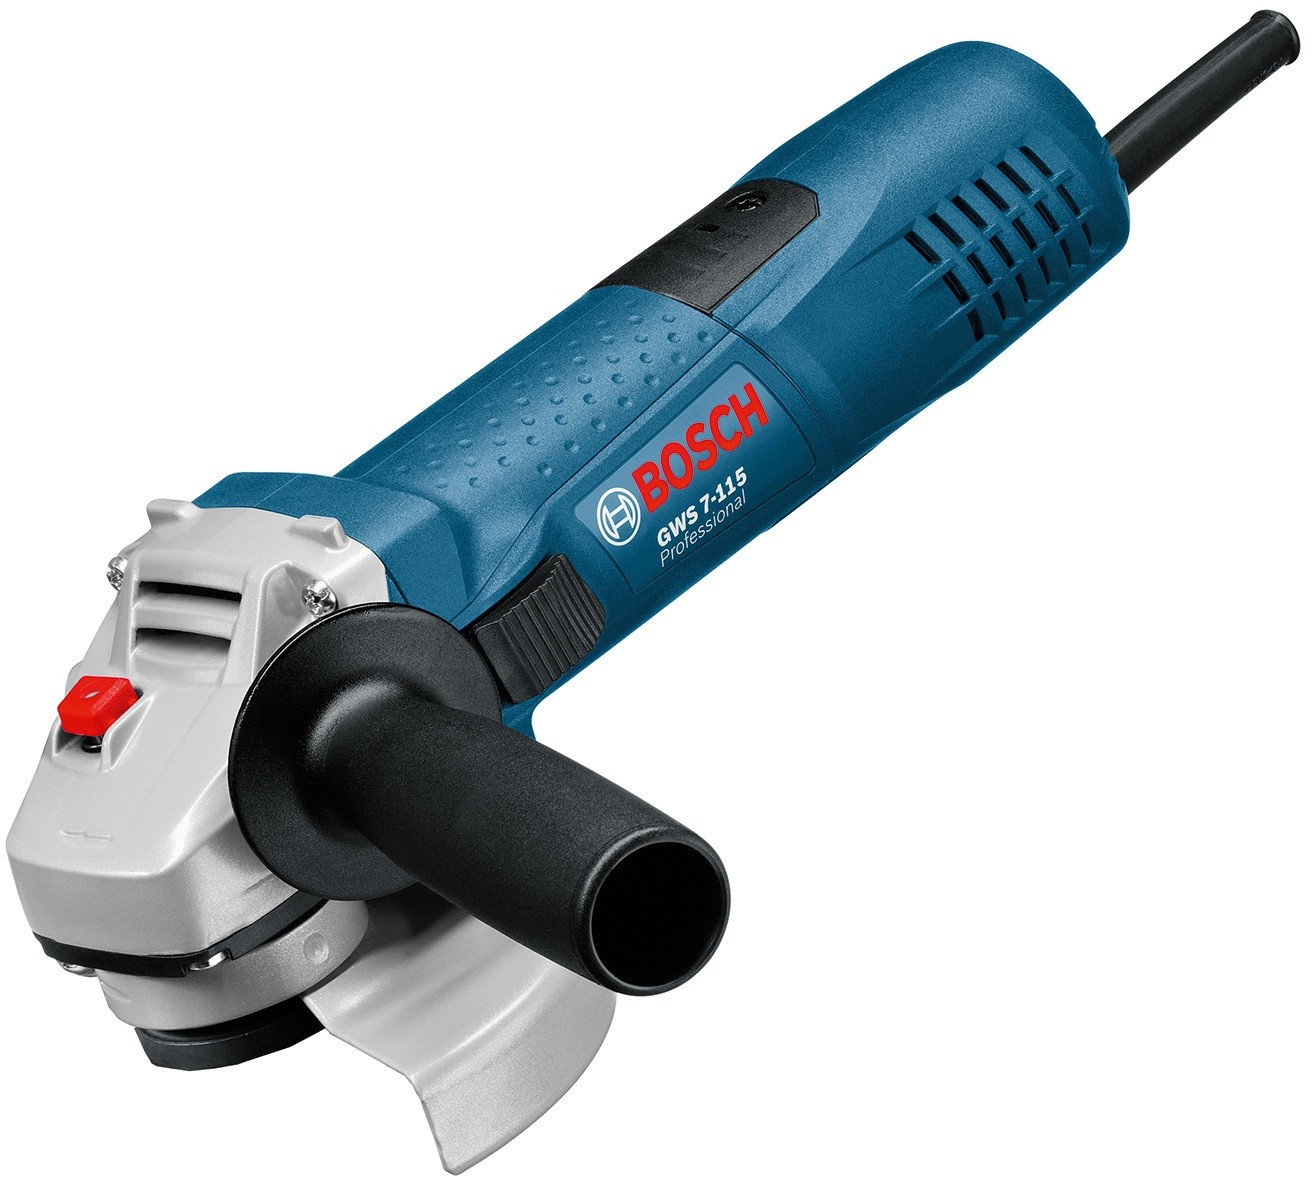 bosch gws 7 115 240v angle grinder 4 1 2 115mm howe tools uk. Black Bedroom Furniture Sets. Home Design Ideas